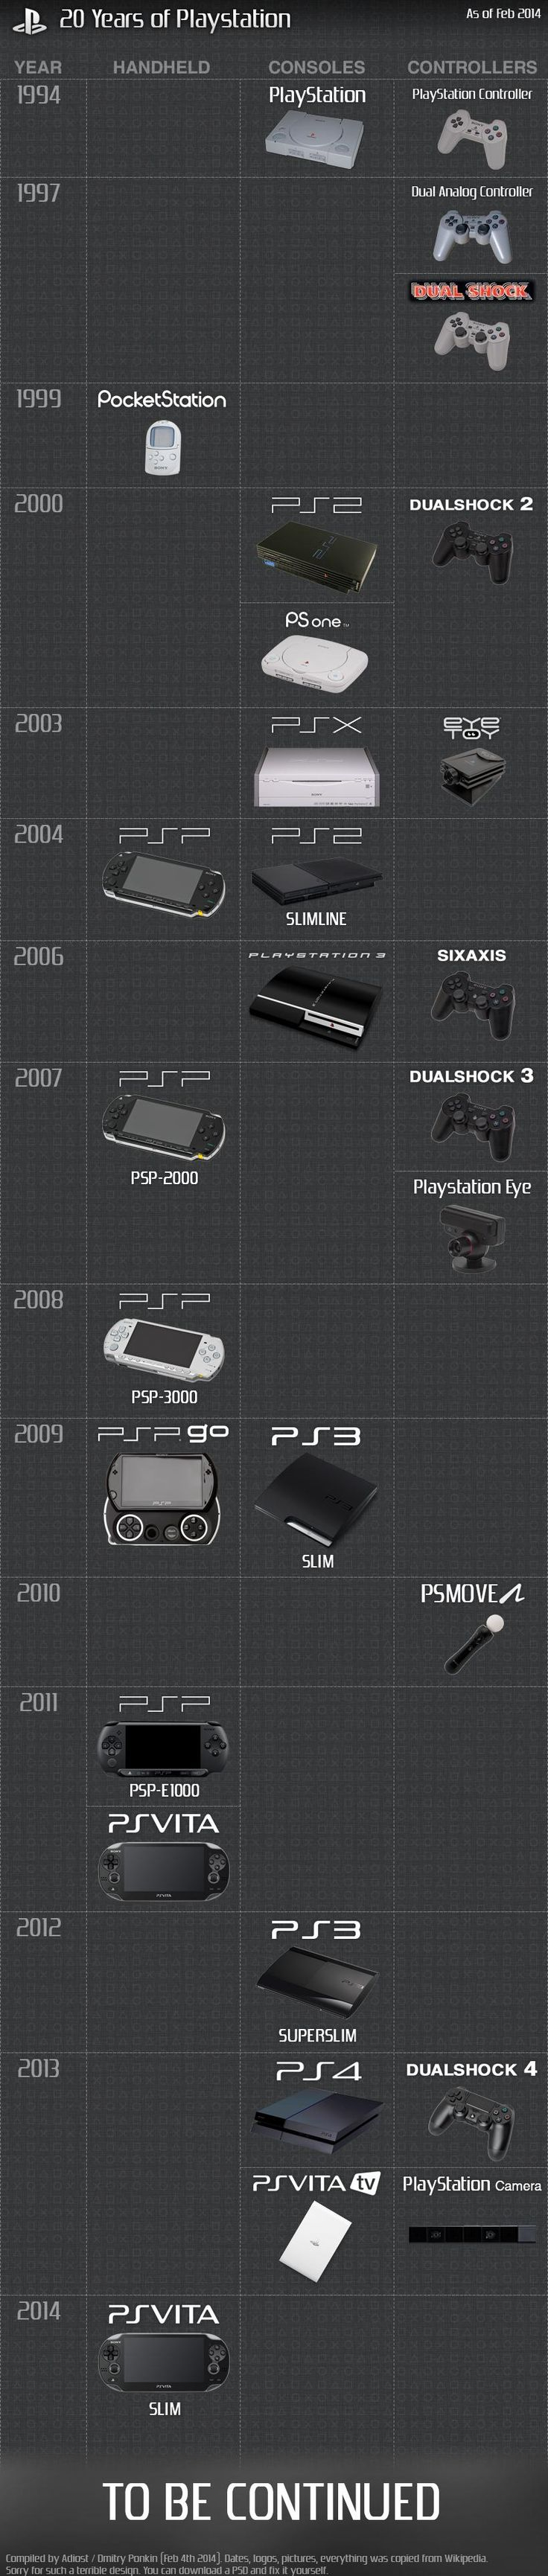 Twenty years of PlayStation in one chart  Instagram for Yorkshire Businesses